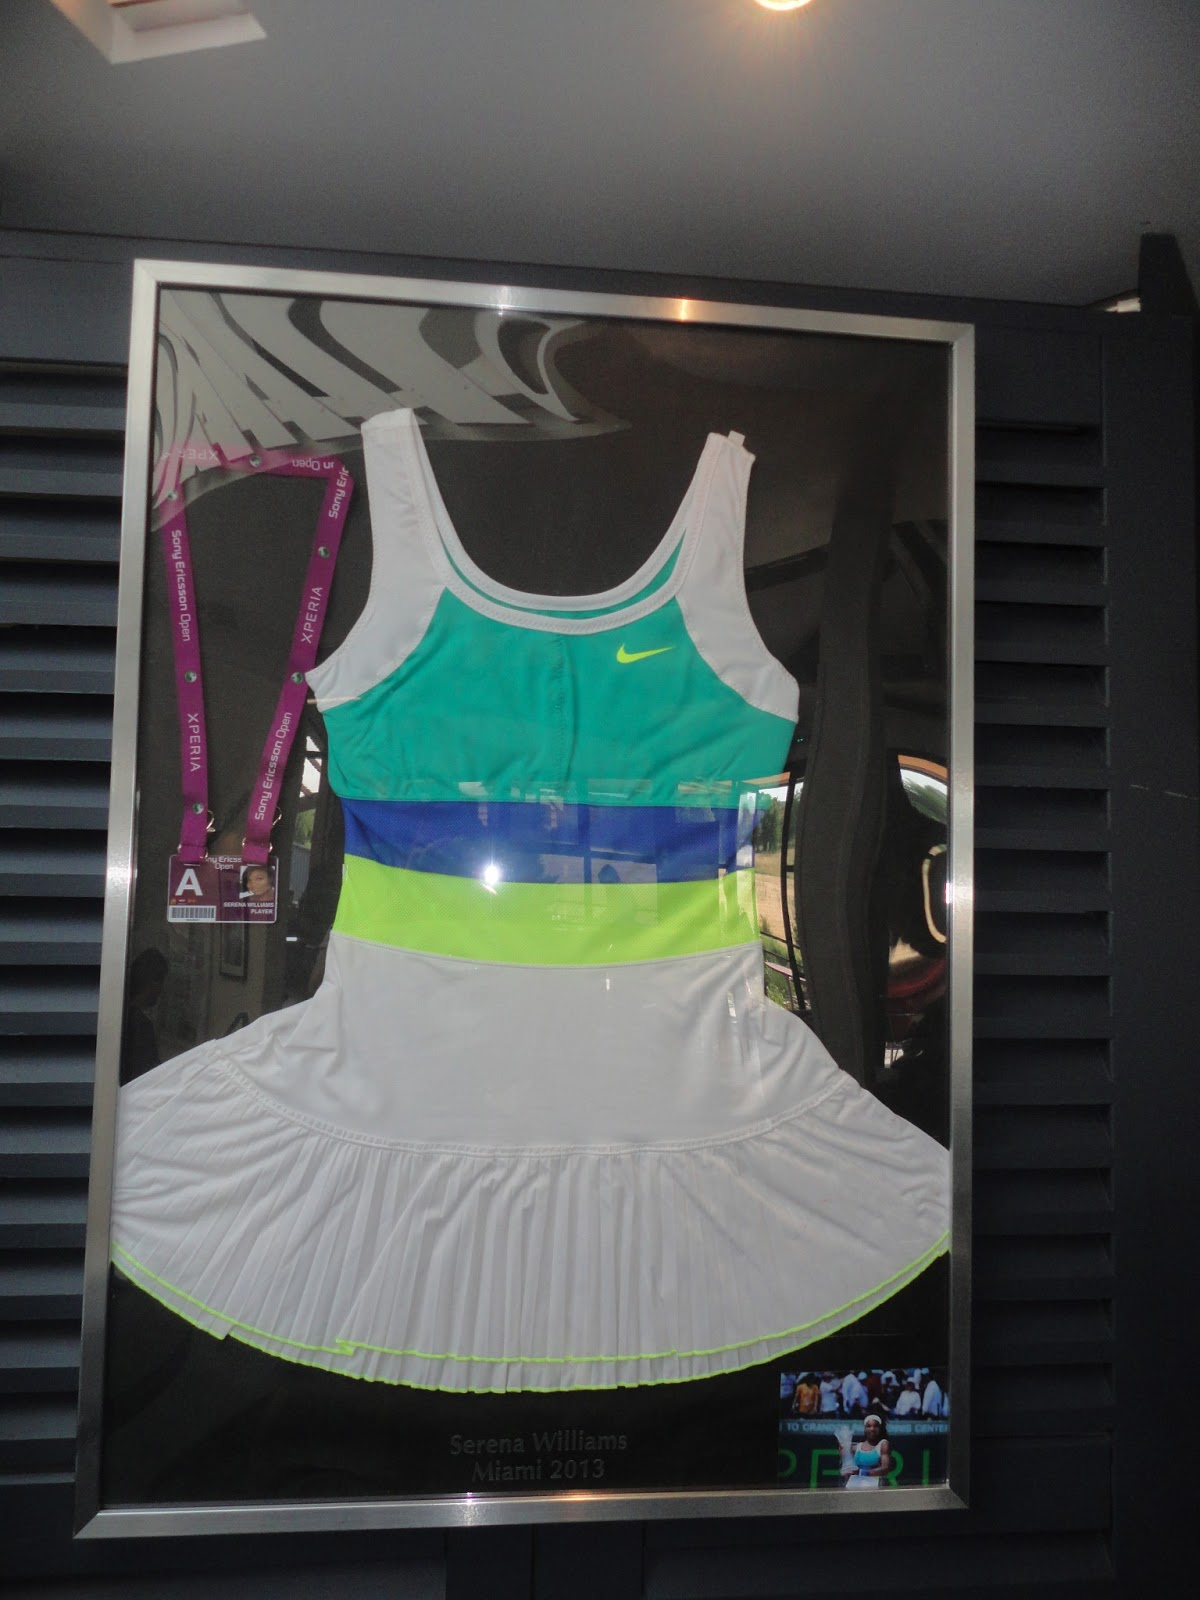 The dress serena wore during the 2012 sony ericsson open